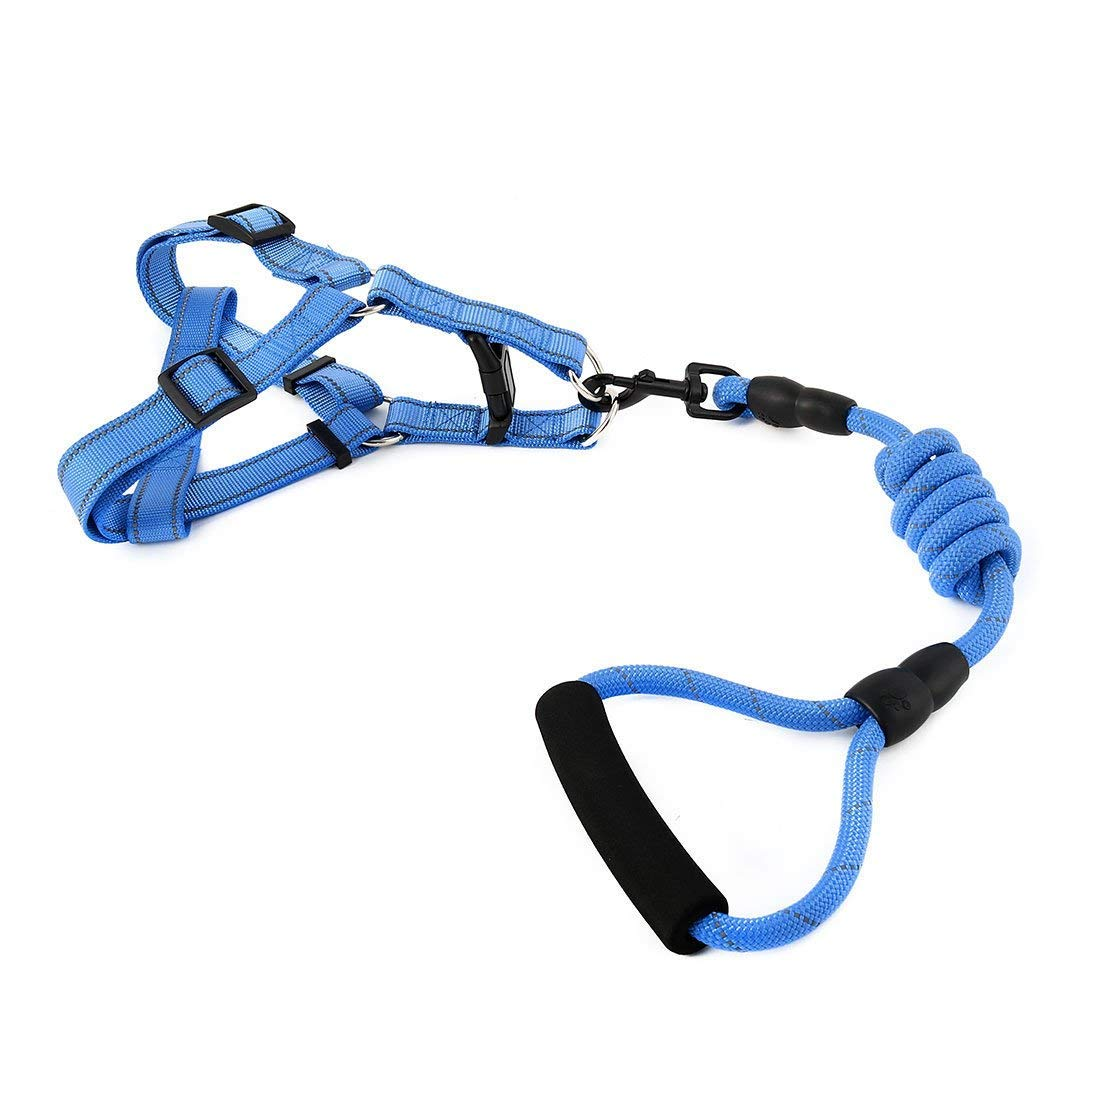 1Pc XL, bluee   Nylon Travel Walking Adjustable Reflective Leash Rope Dog Pet Neck Belt Harness